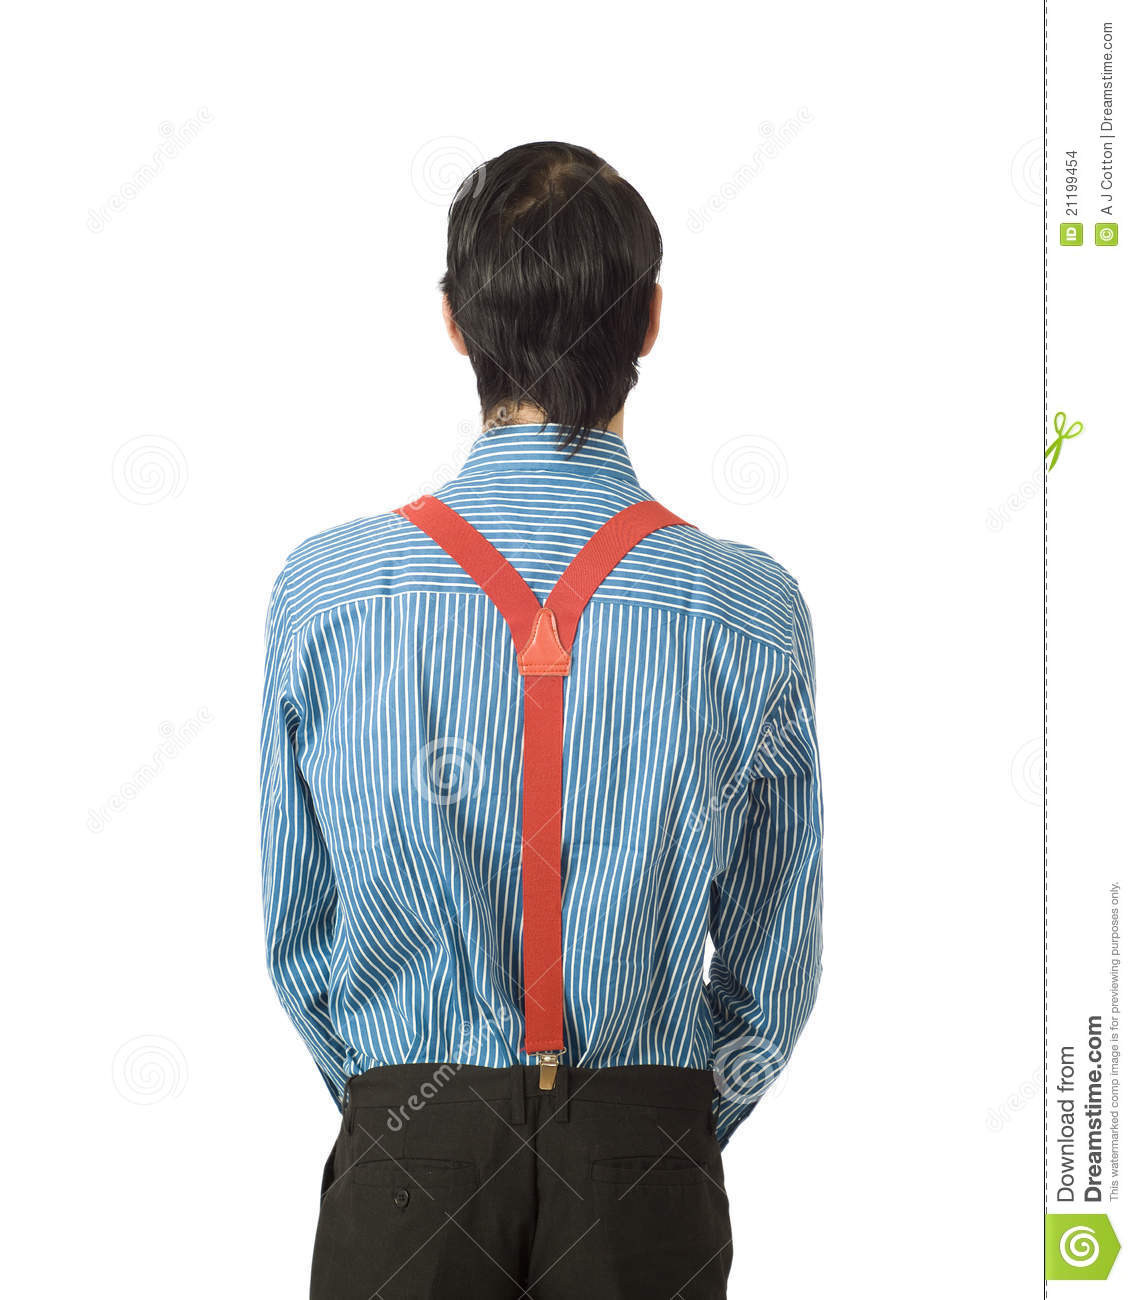 Businessman from the back